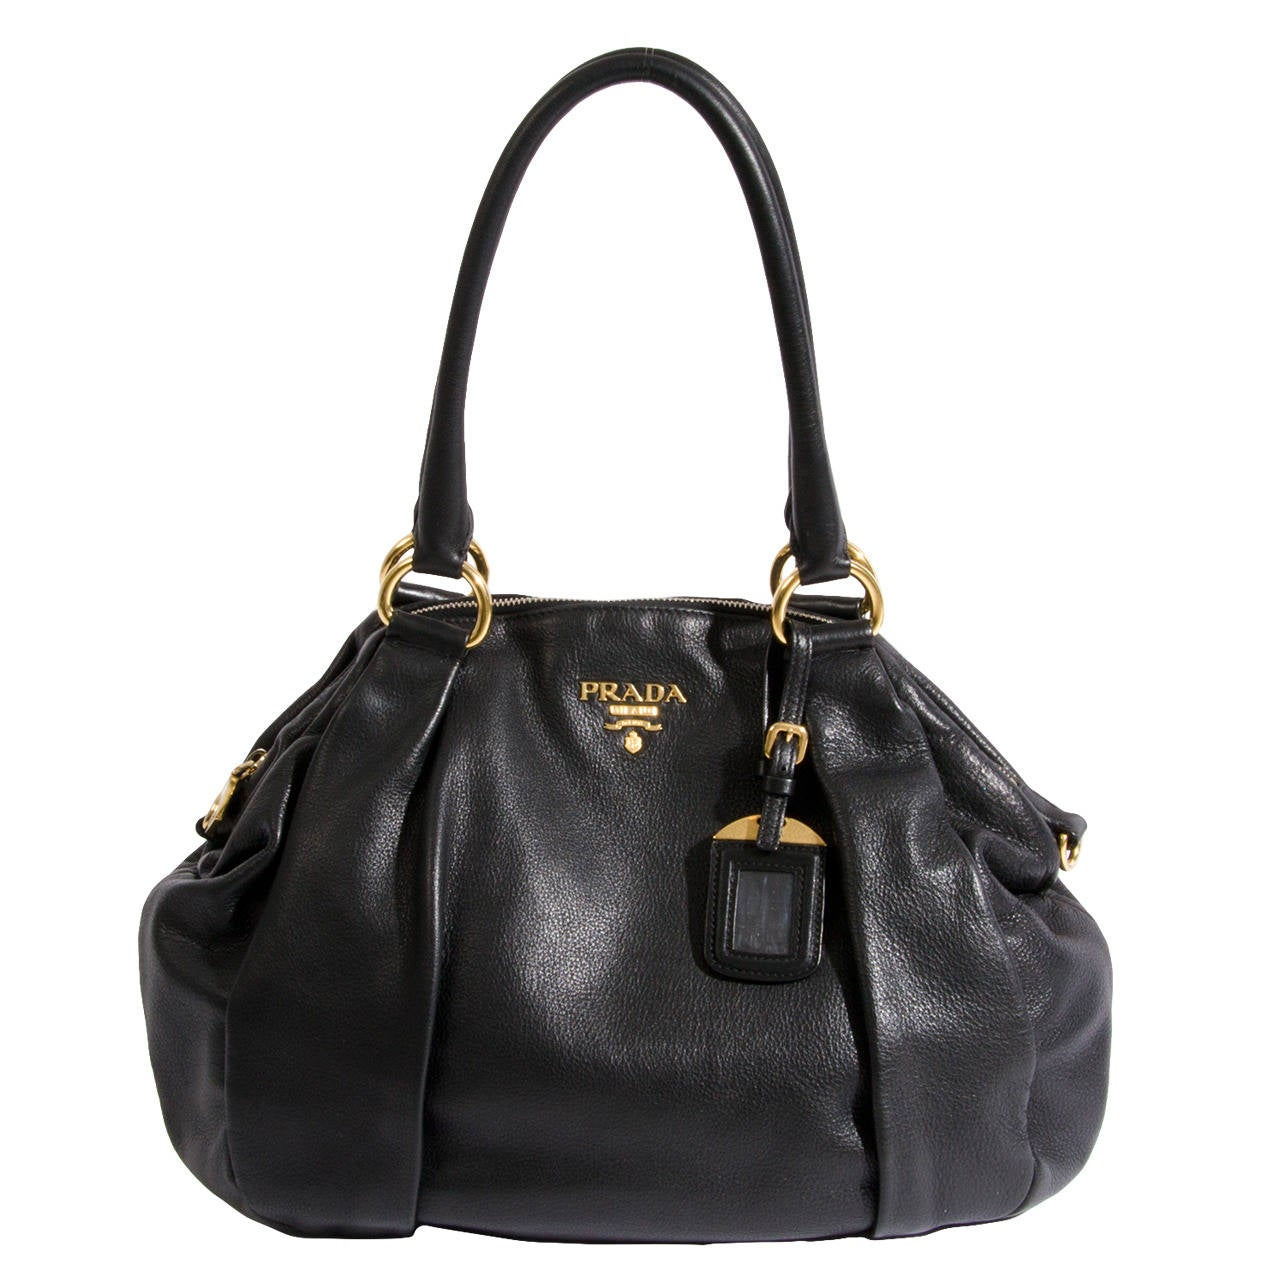 prada handbags fake or real - Prada Black Leather Top Handle Bag at 1stdibs